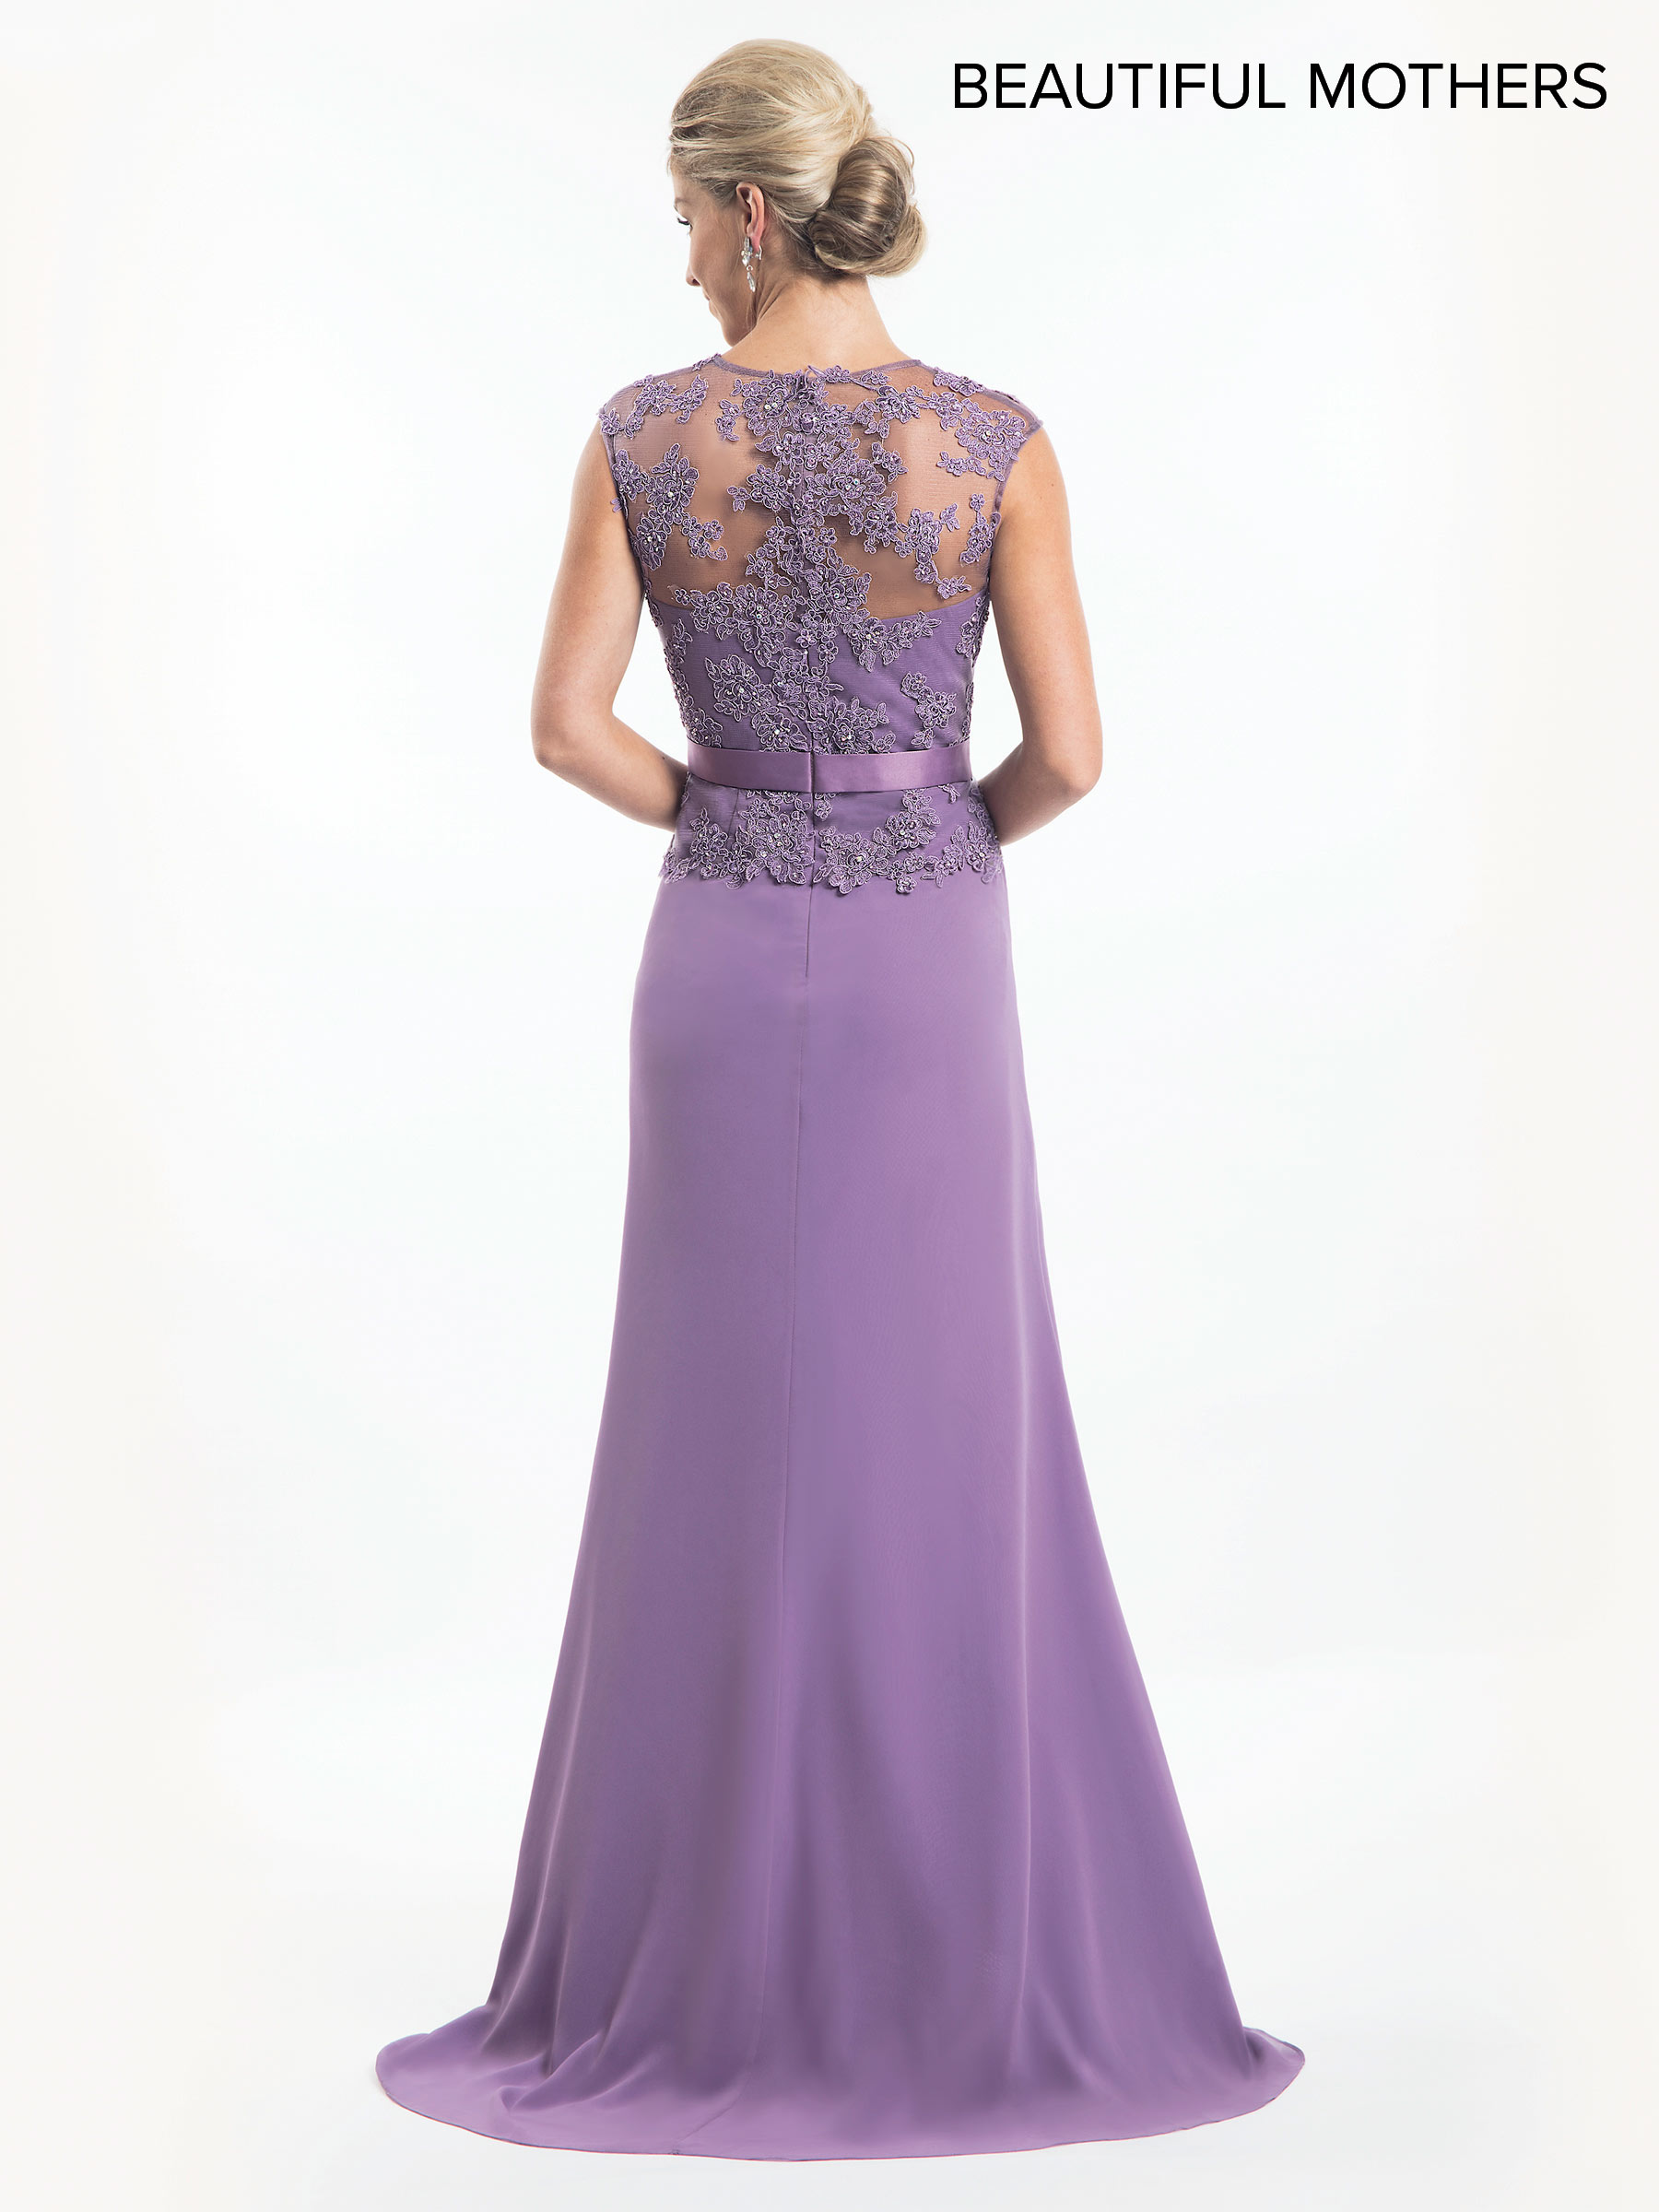 Mother Of The Bride Dresses | Beautiful Mothers | Style - MB8017